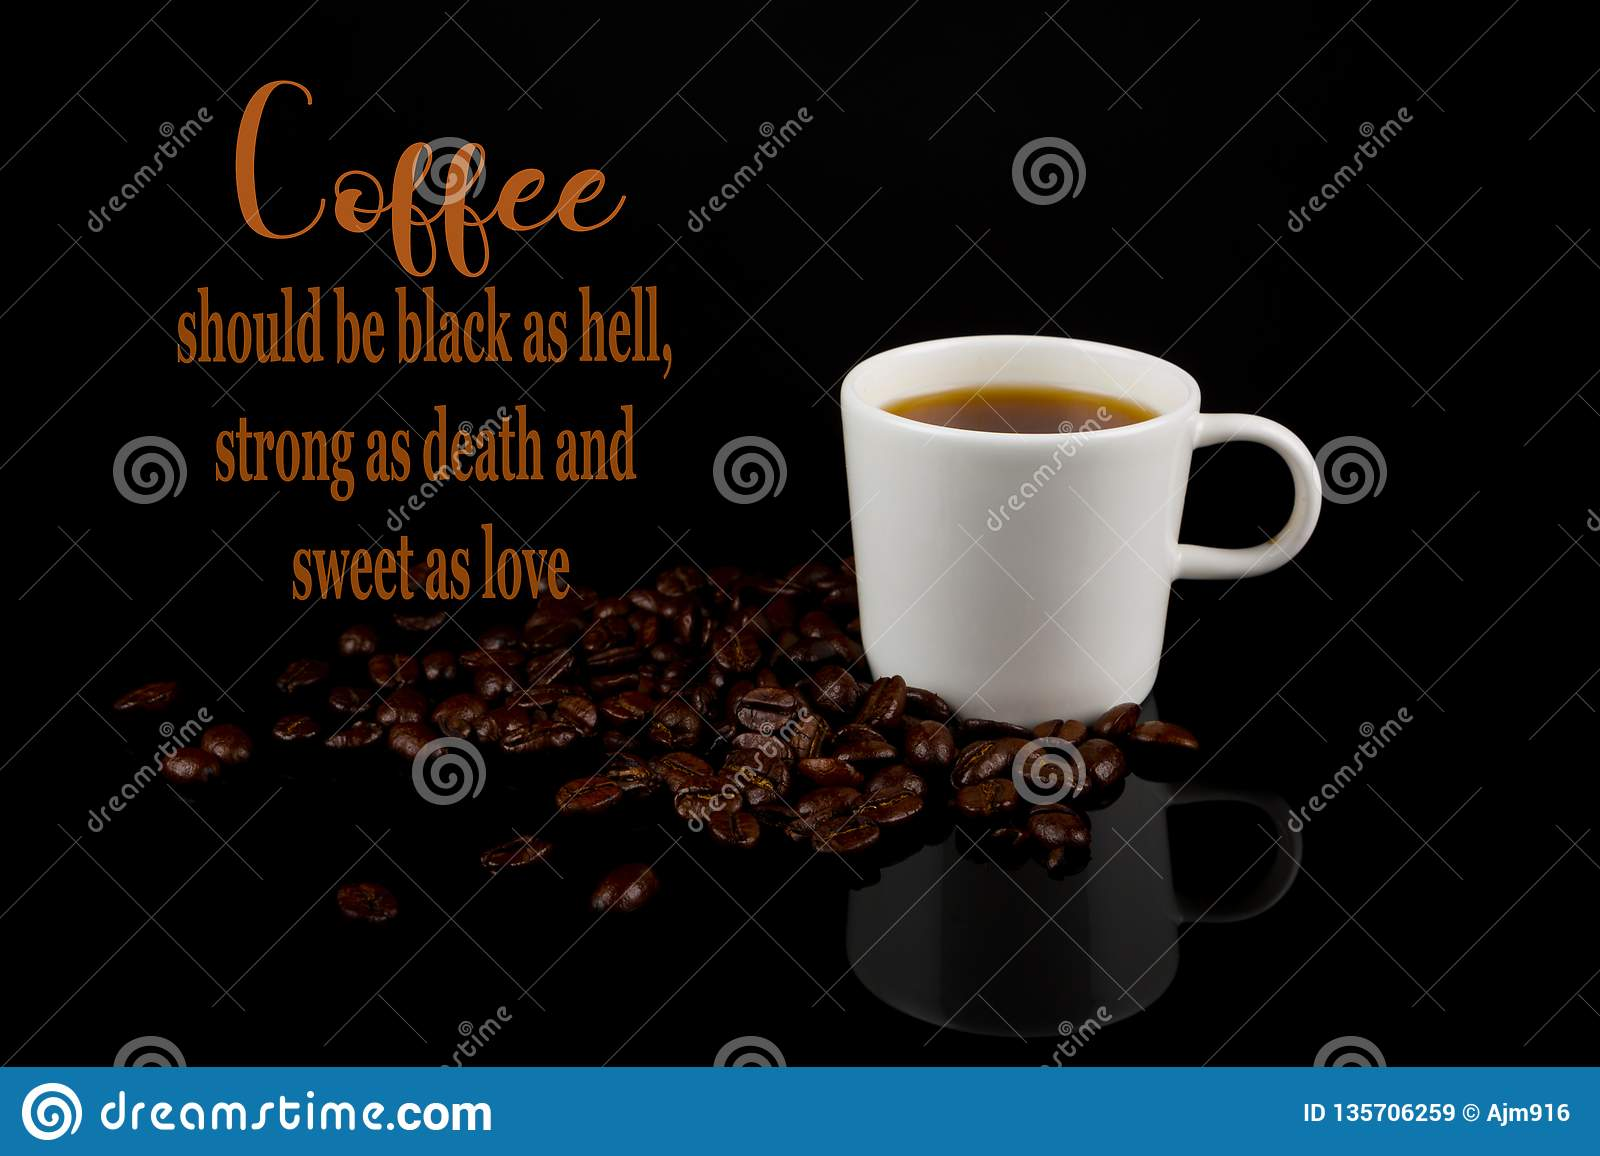 Funny Coffee Memes,black As Hell And Sweet As Love Stock Image ... #blackCoffee